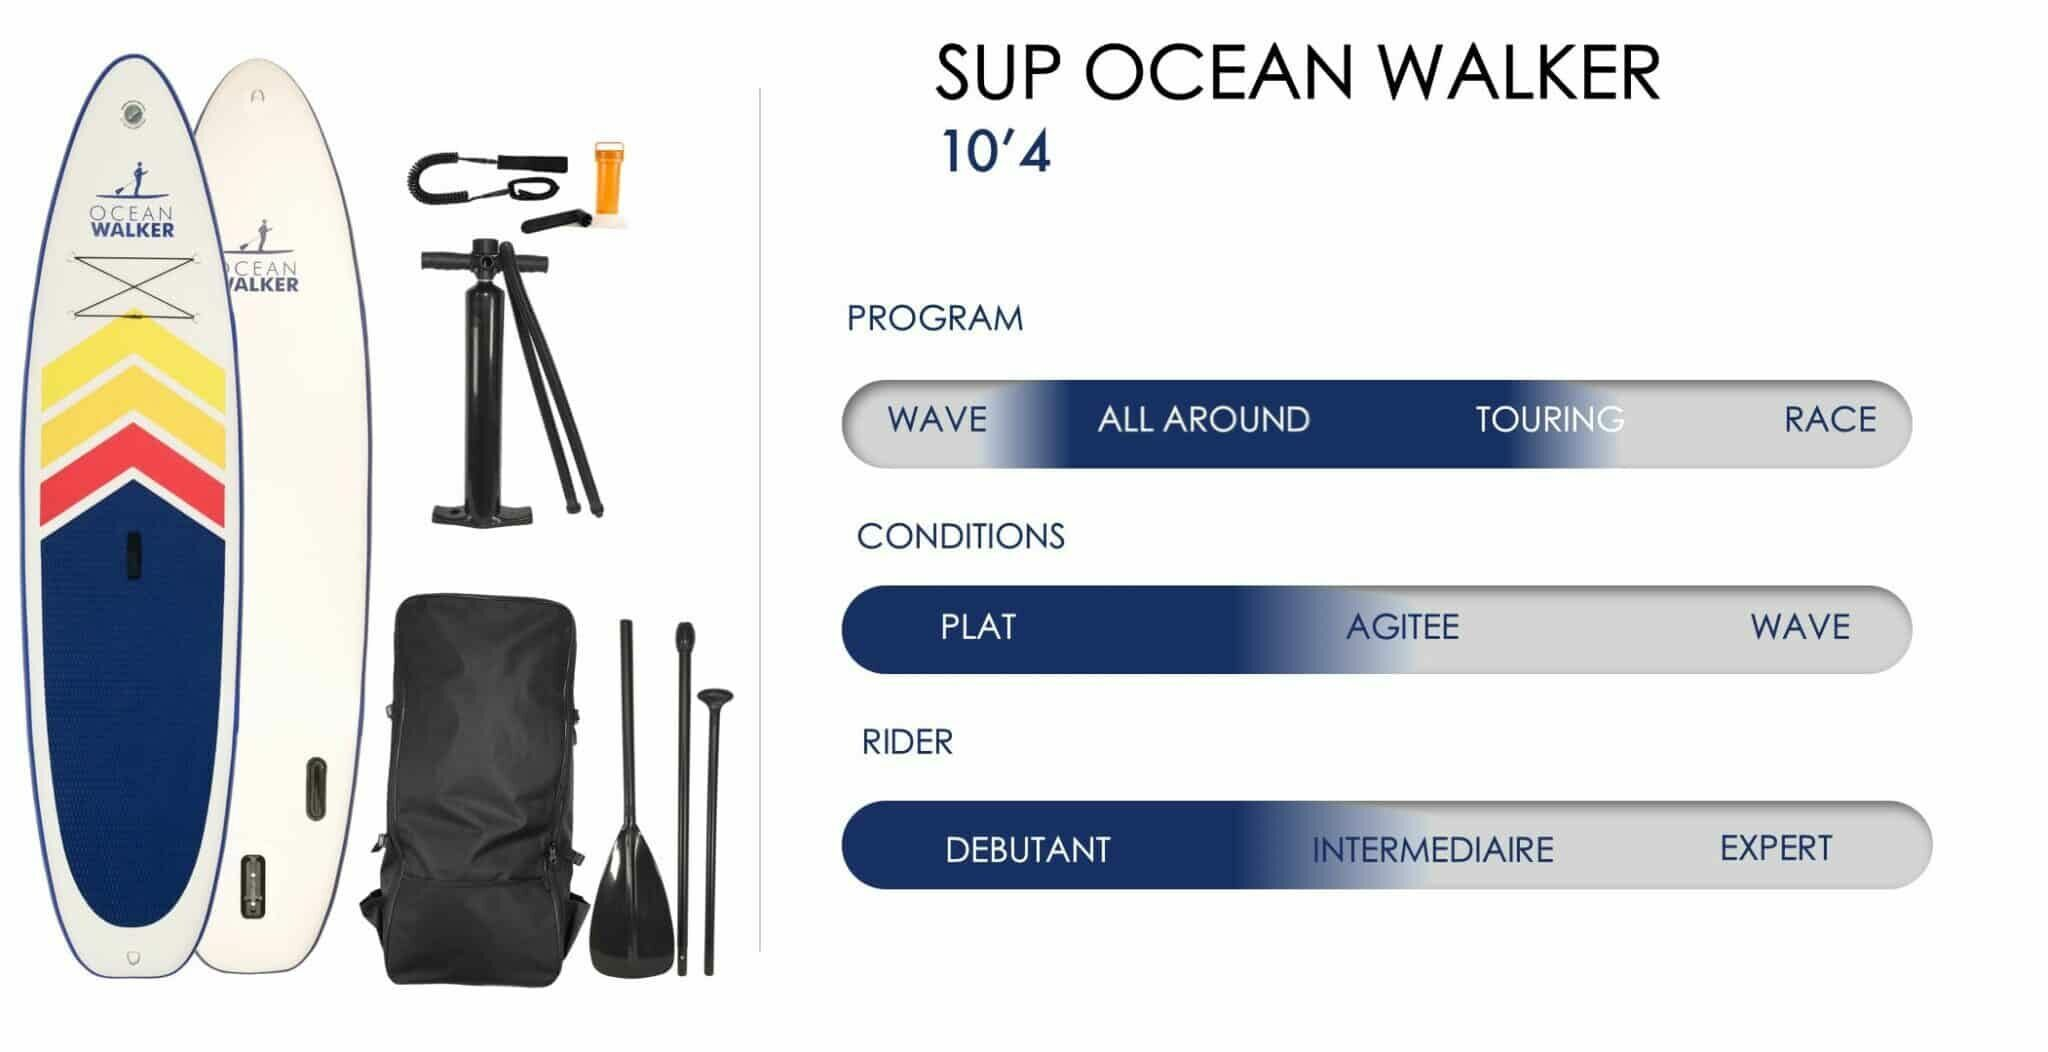 CHARACTERISTICS OF THE OCEAN WALKER PADDLE